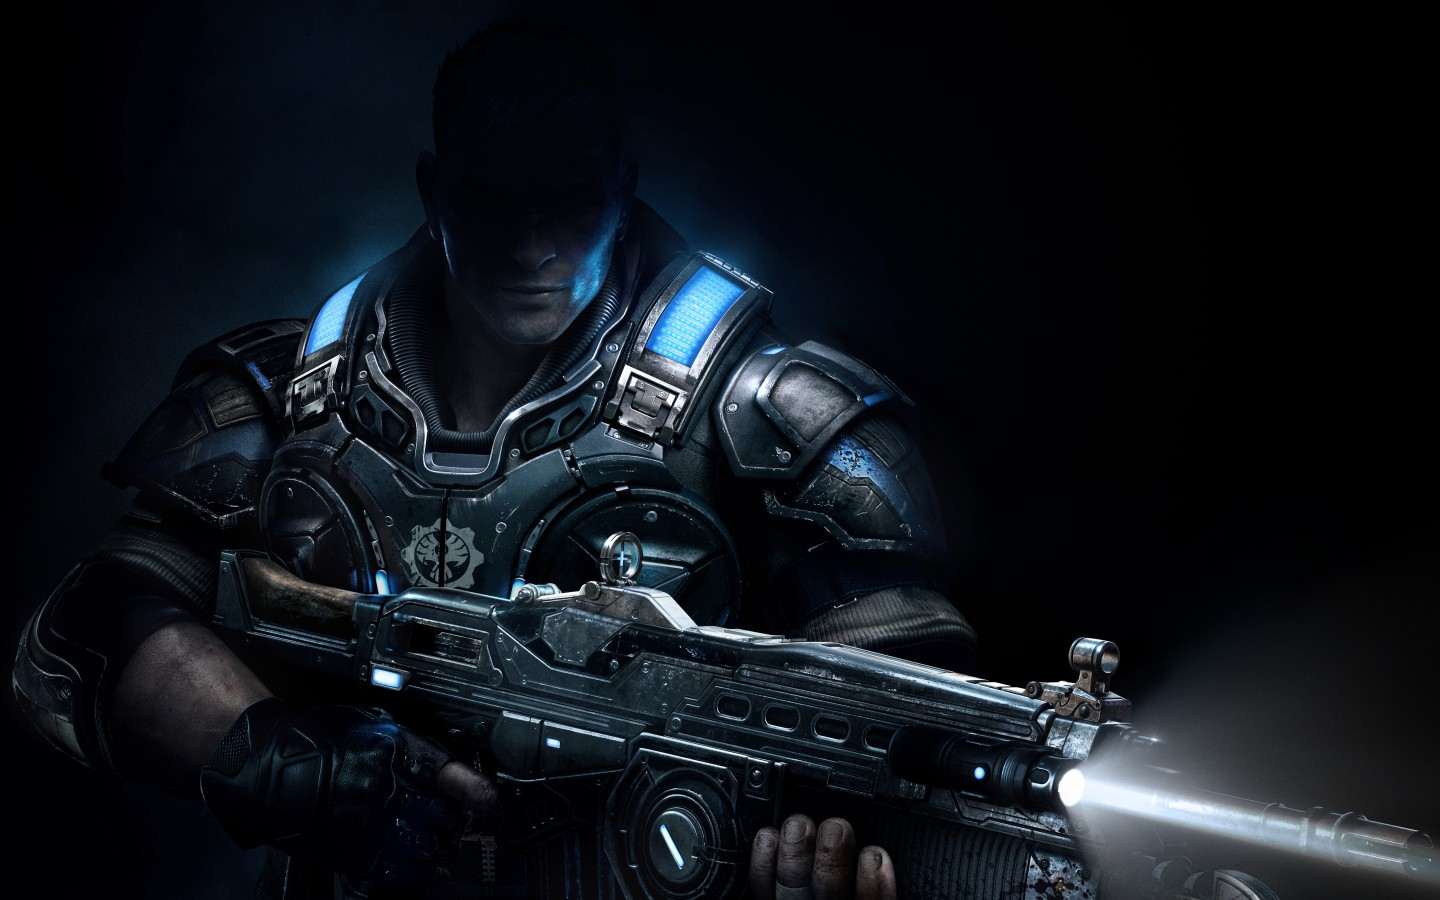 Latest Wallpapers Of Nature In 3d Gears Of War 4 Protagonist Wallpapers Hd Wallpapers Id